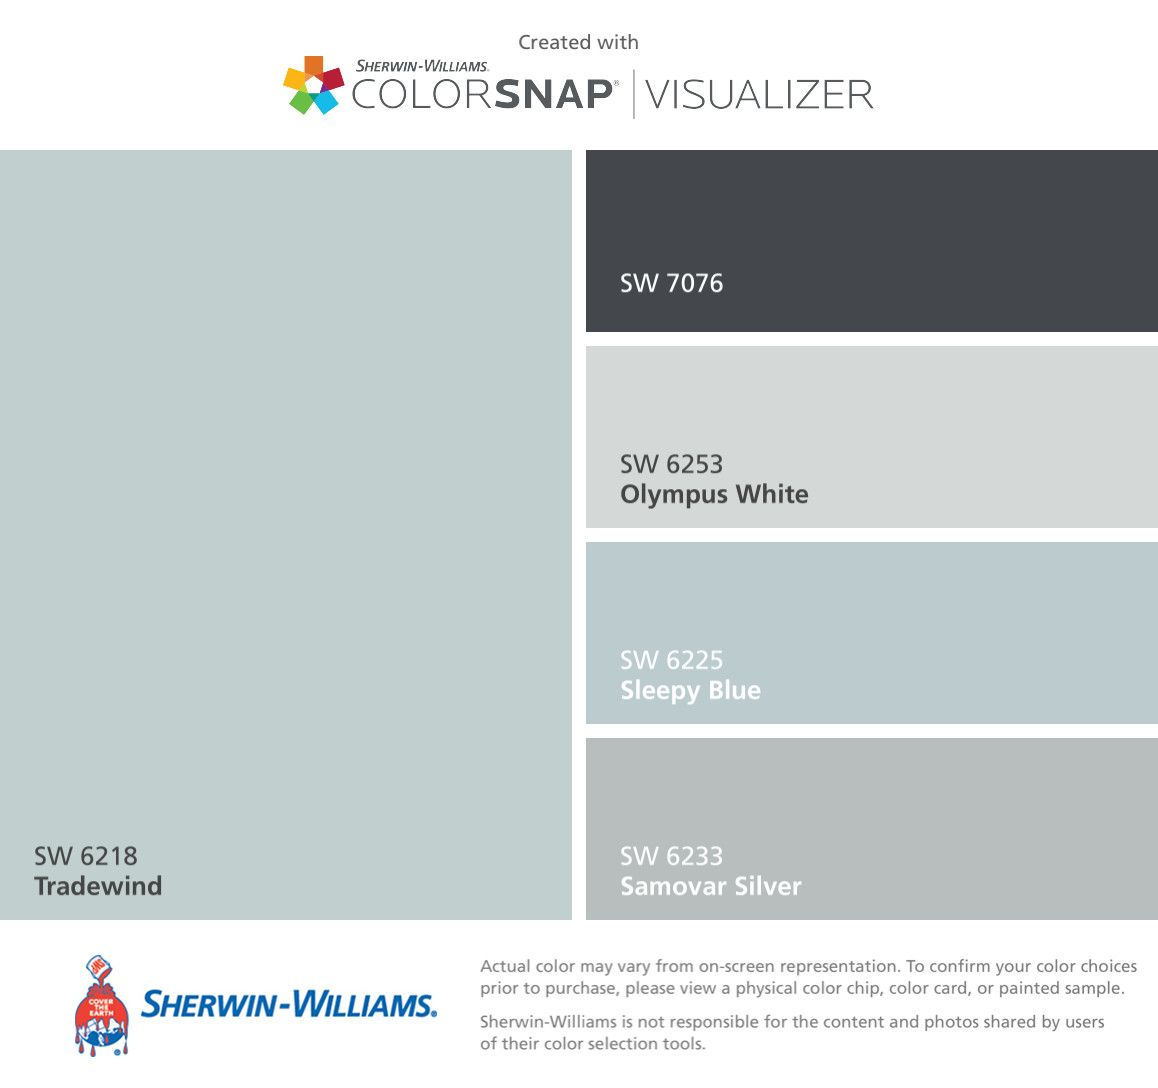 Joanna gaines master bedroom paint colors  Joanna Gaines Paint Colors Matched   Paint colors  Pinterest